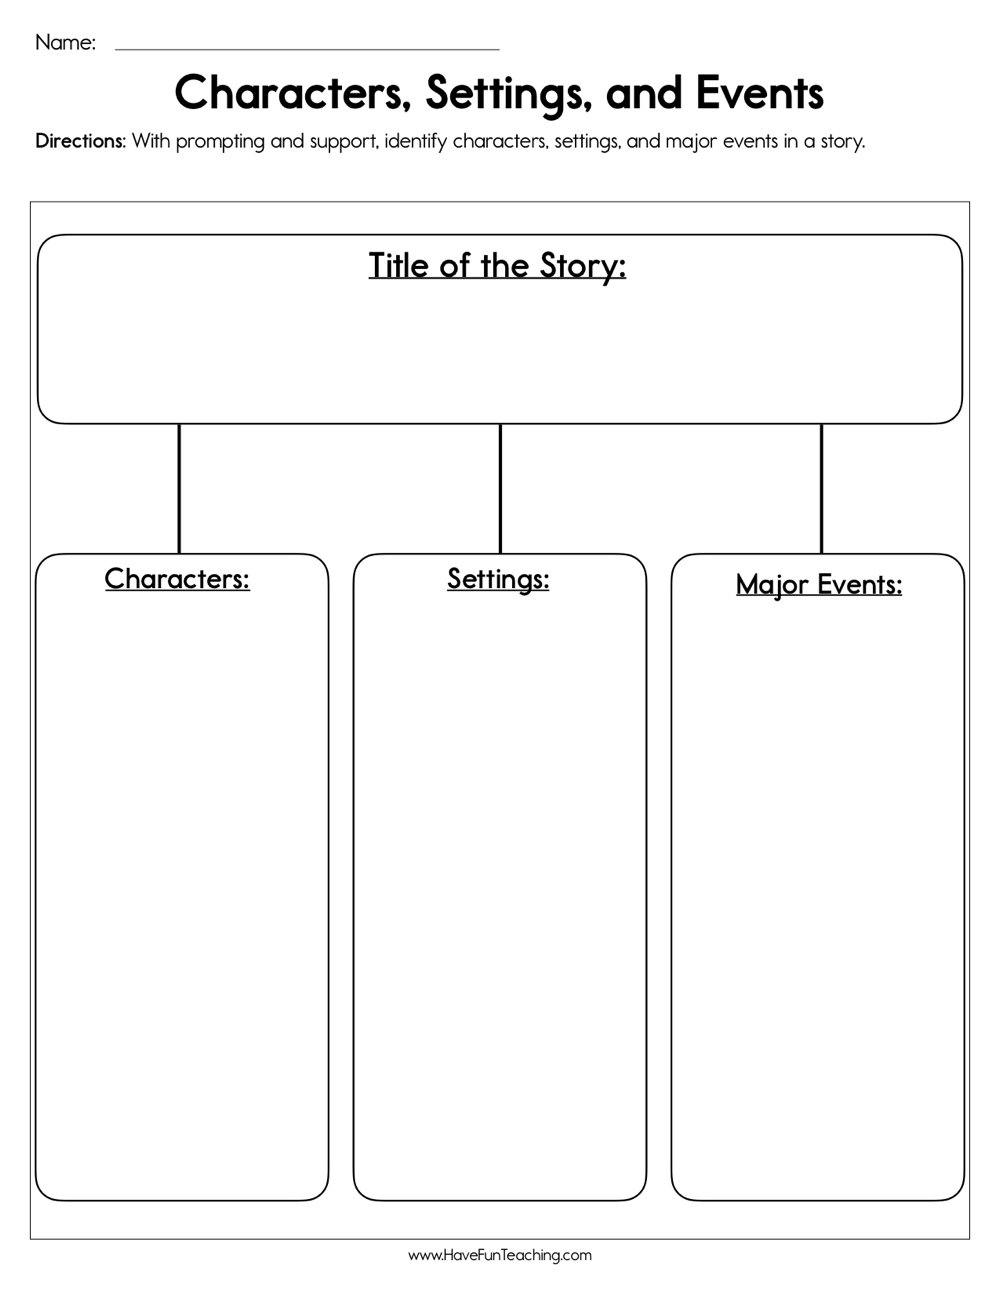 Characters, Settings, and Events Worksheet | Have Fun Teaching